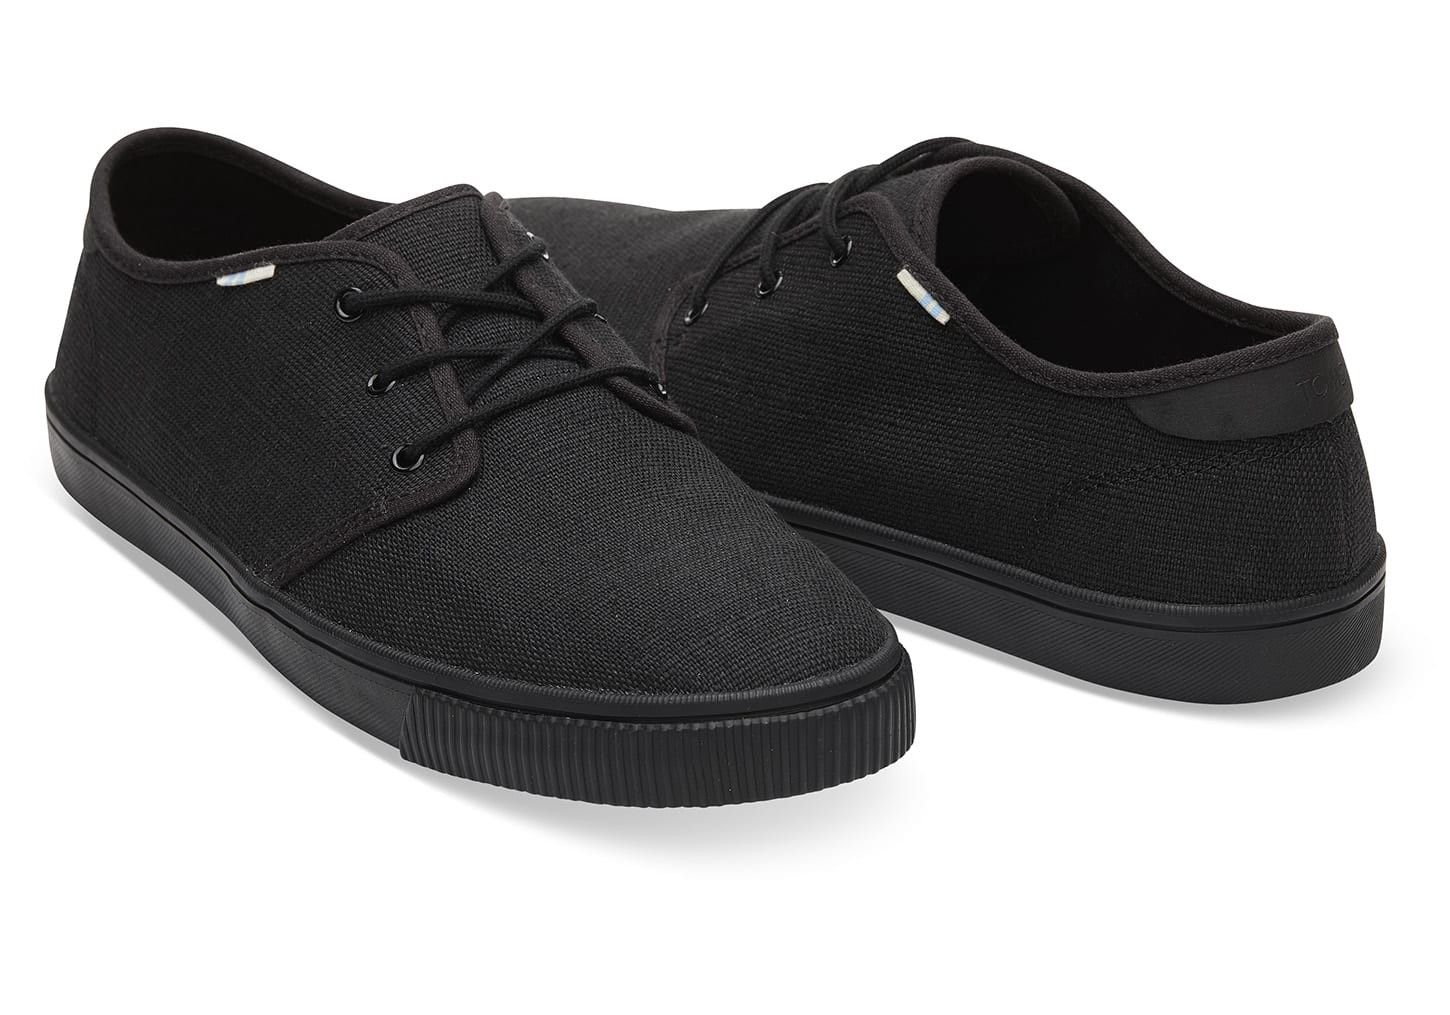 011bcfe7d76b3 Toms Black On Heritage Canvas Men's Carlo Sneaker Shoes - 9.5 ...